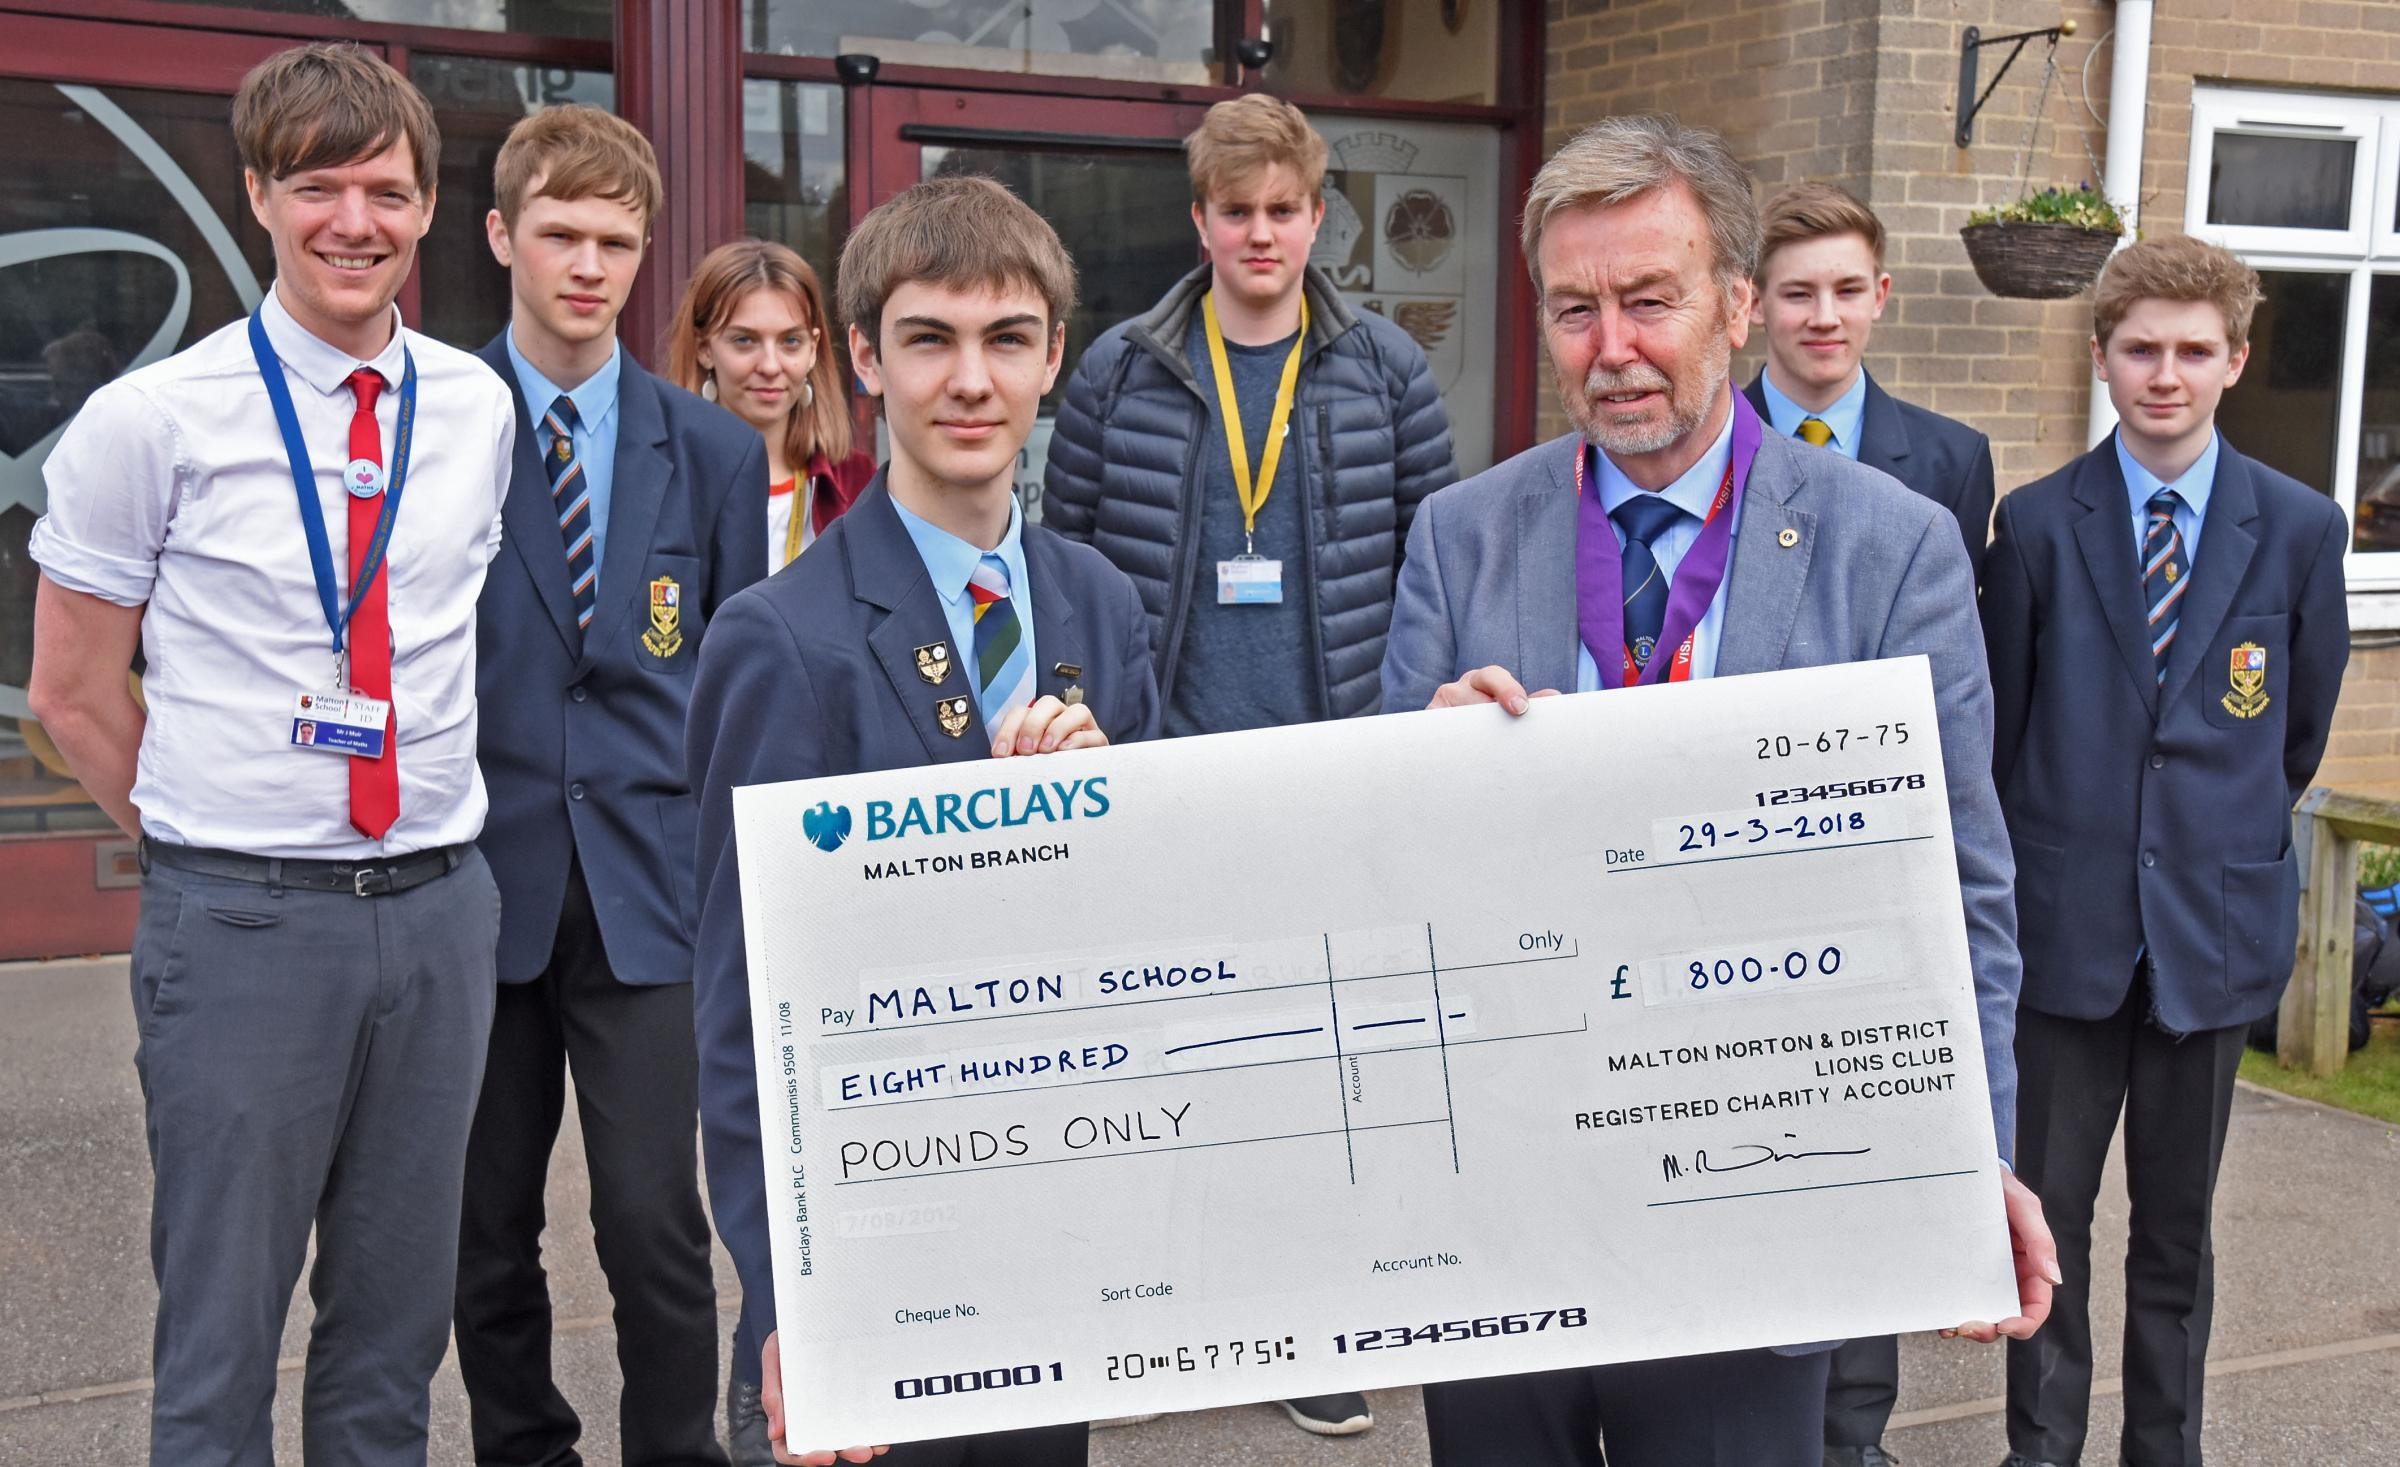 Steve Sidaway, right, vice-president of Malton Lions, presents a cheque to pupils at Malton School who are going on a Camp International trip, watched by teacher James Muir, left, who will be leading the trip   Picture: Nigel Holland